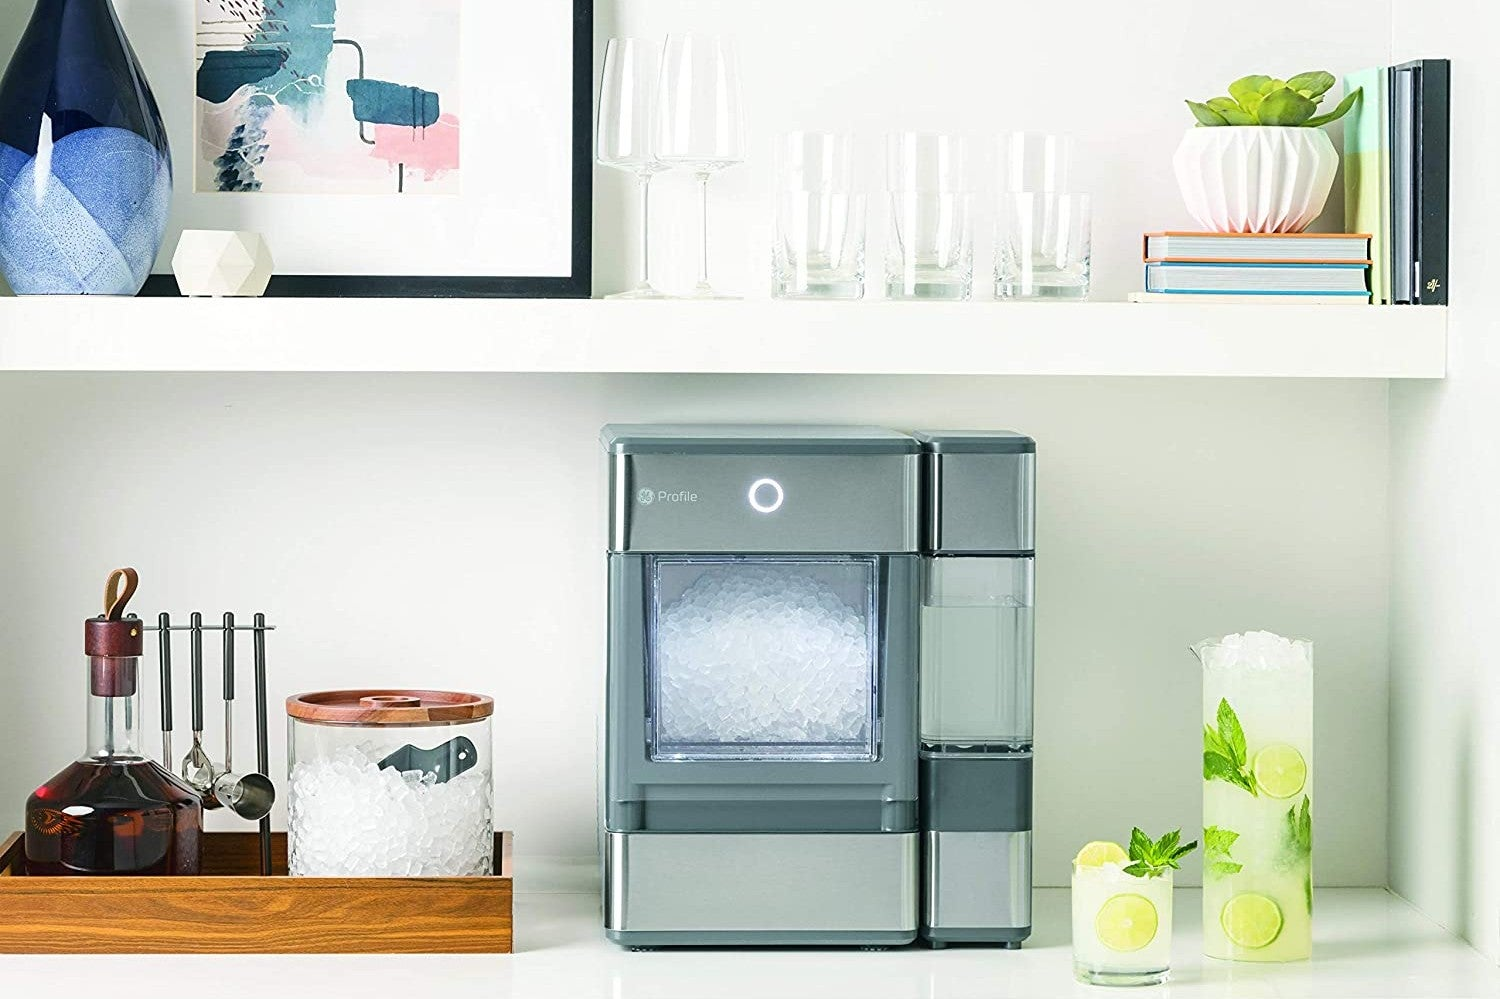 The Best Portable Ice Maker Options For The Kitchen Or Bar Bob Vila